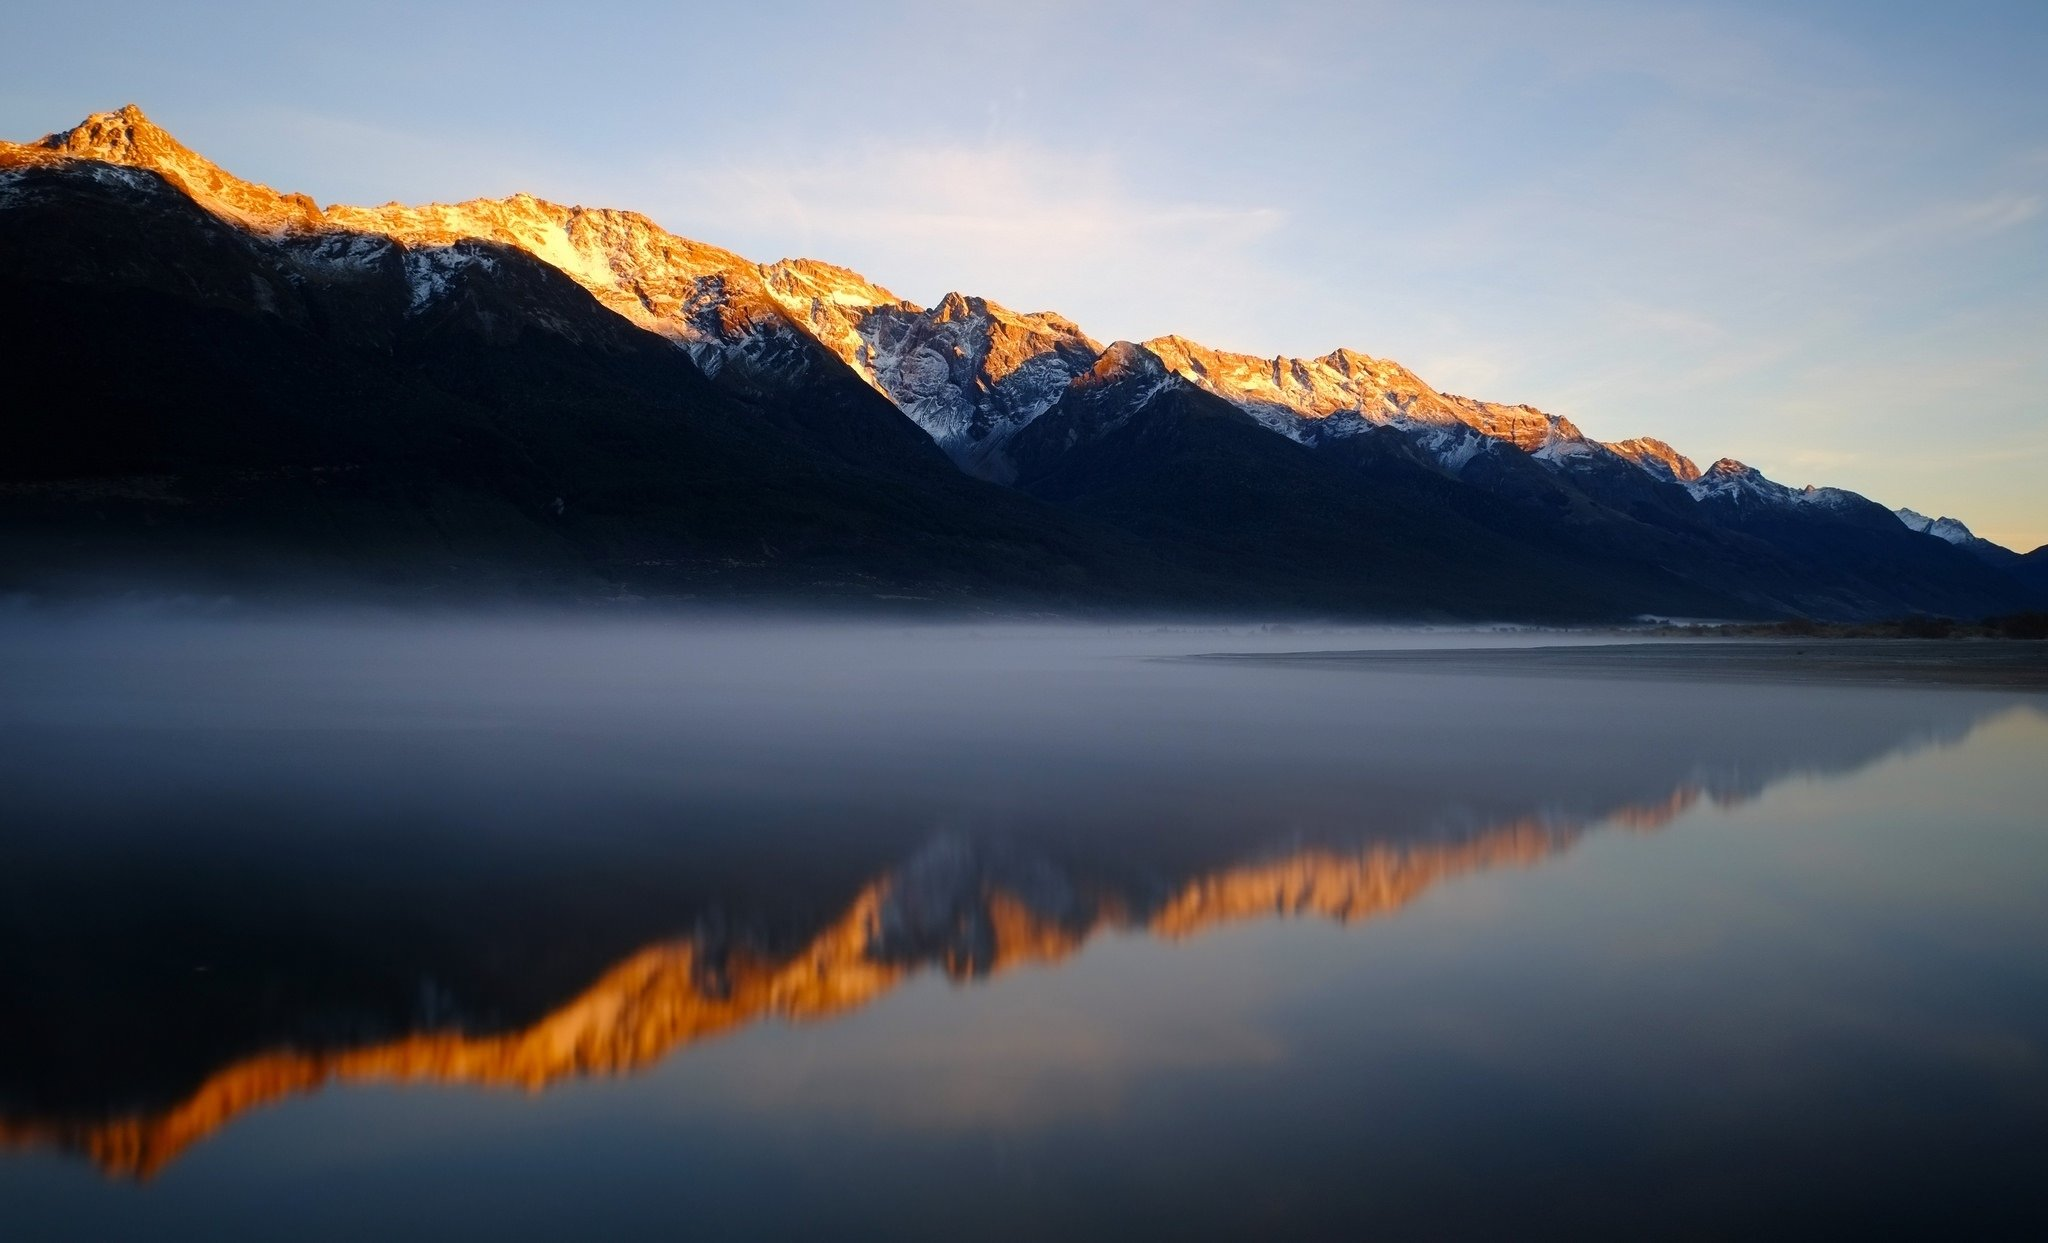 Mountains snow lake water dawn fog reflection nature landscape